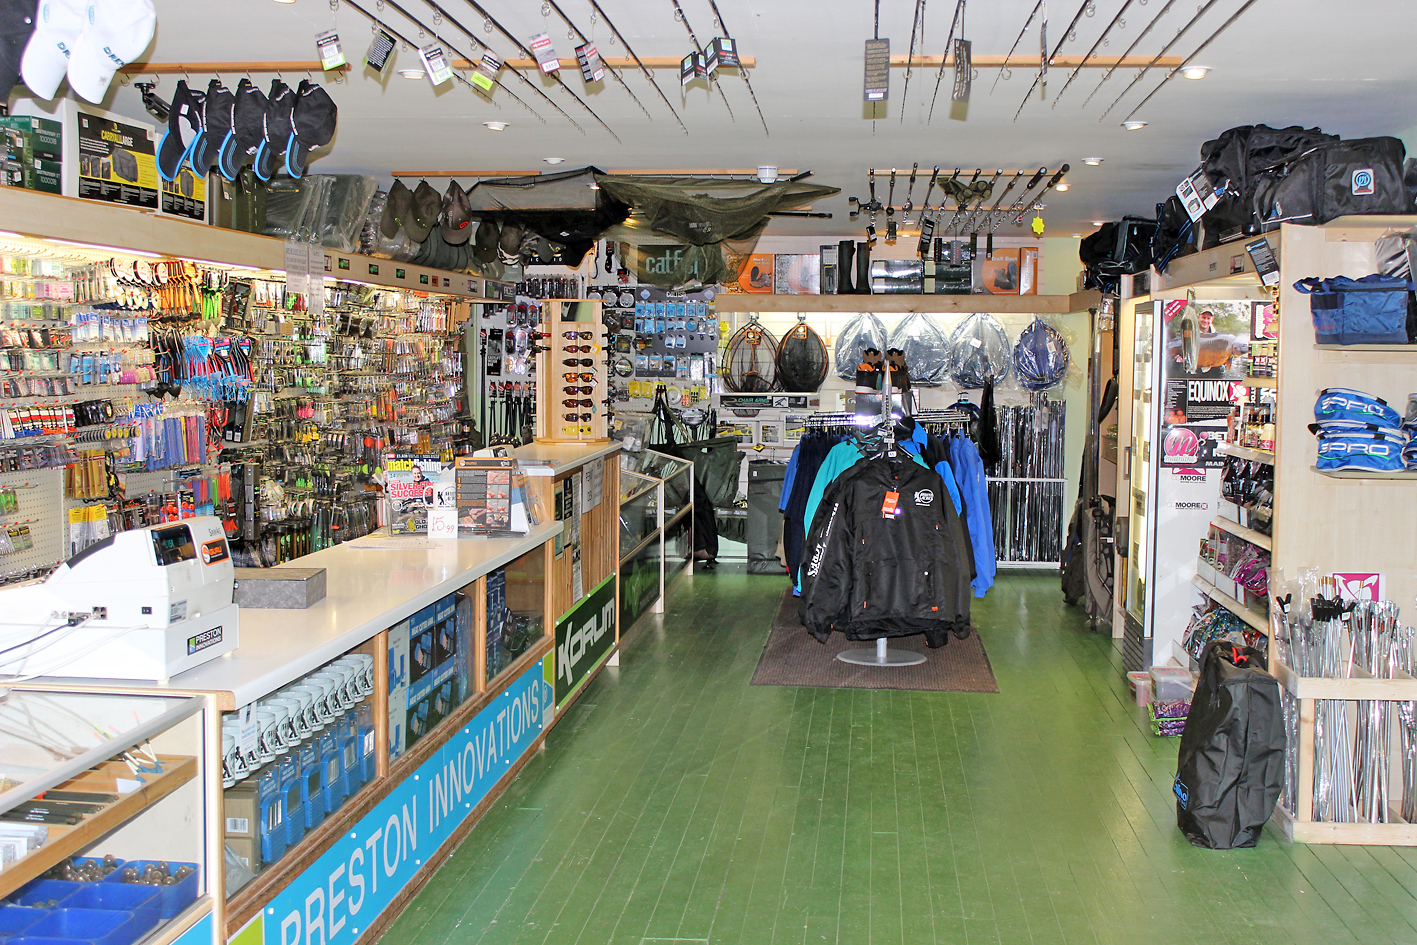 There's not much you won't find in their well stocked tackle shop